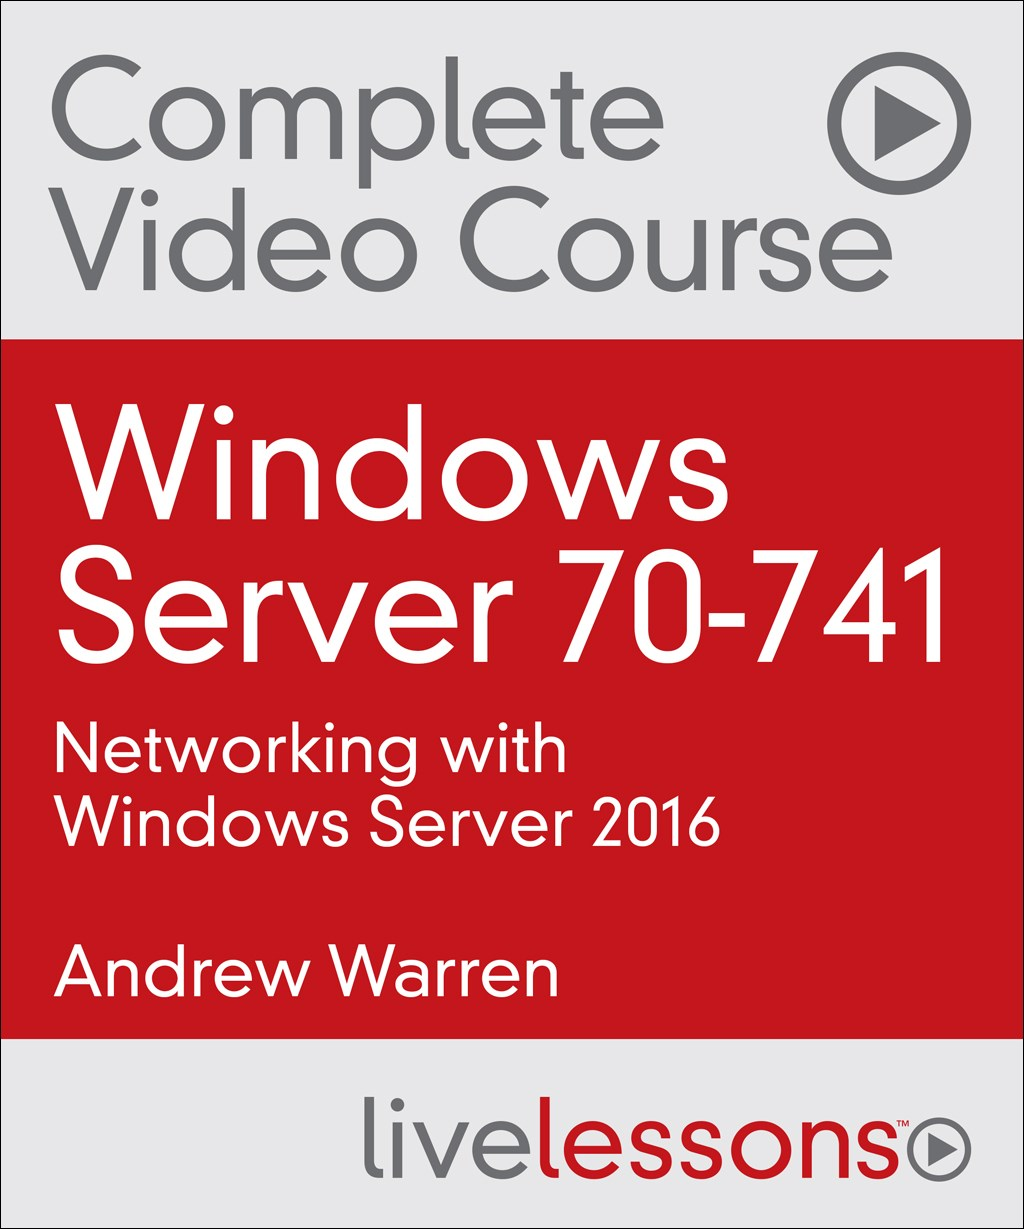 Windows Server 70-741: Networking with Windows Server 2016 Complete Video Course and Practice Test